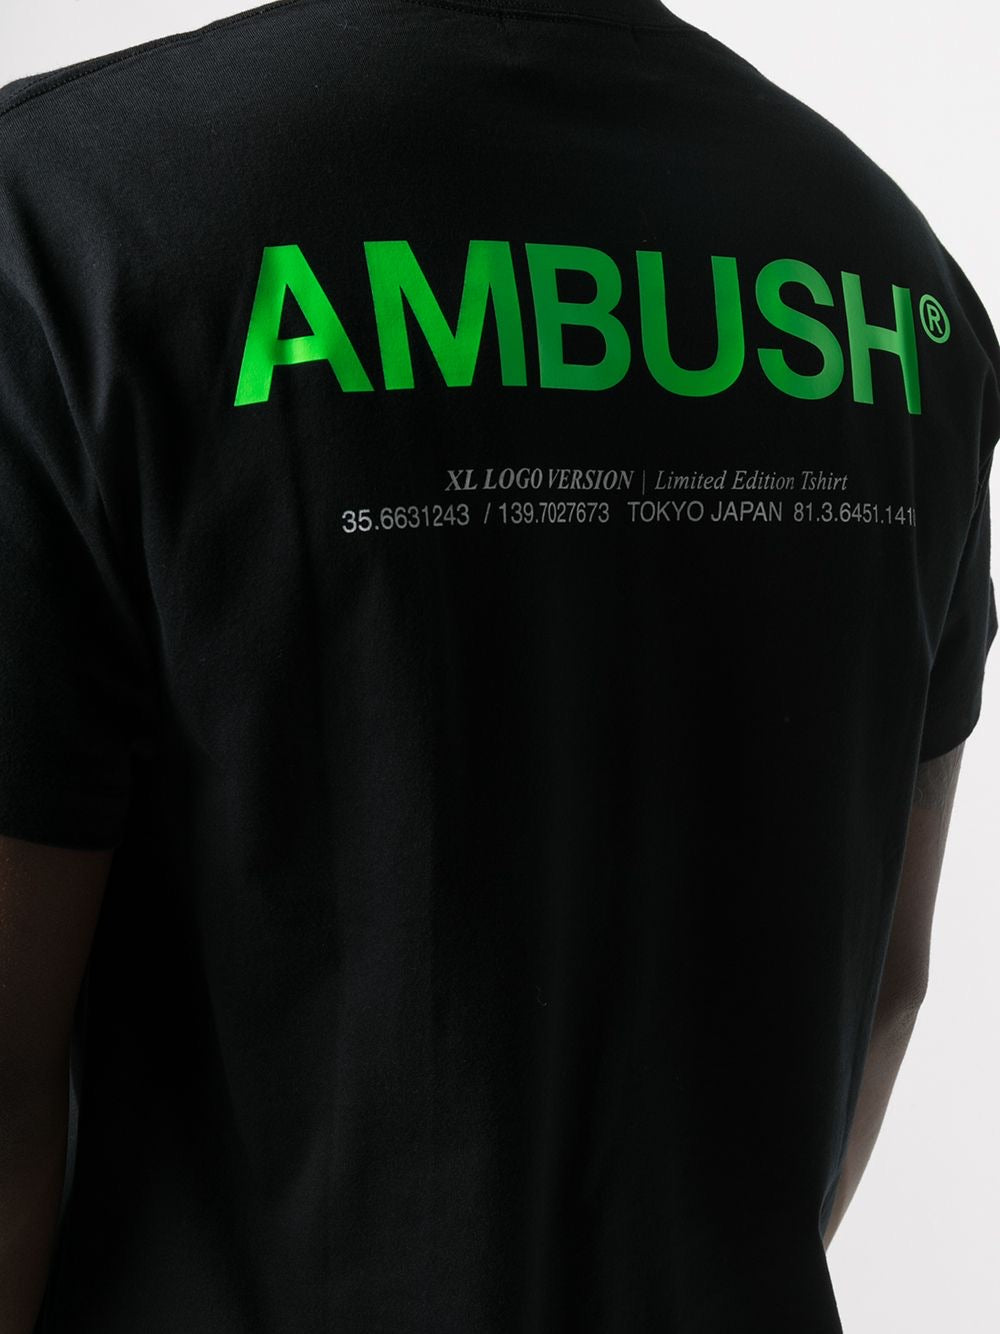 Black and Green XL Logo T-Shirt